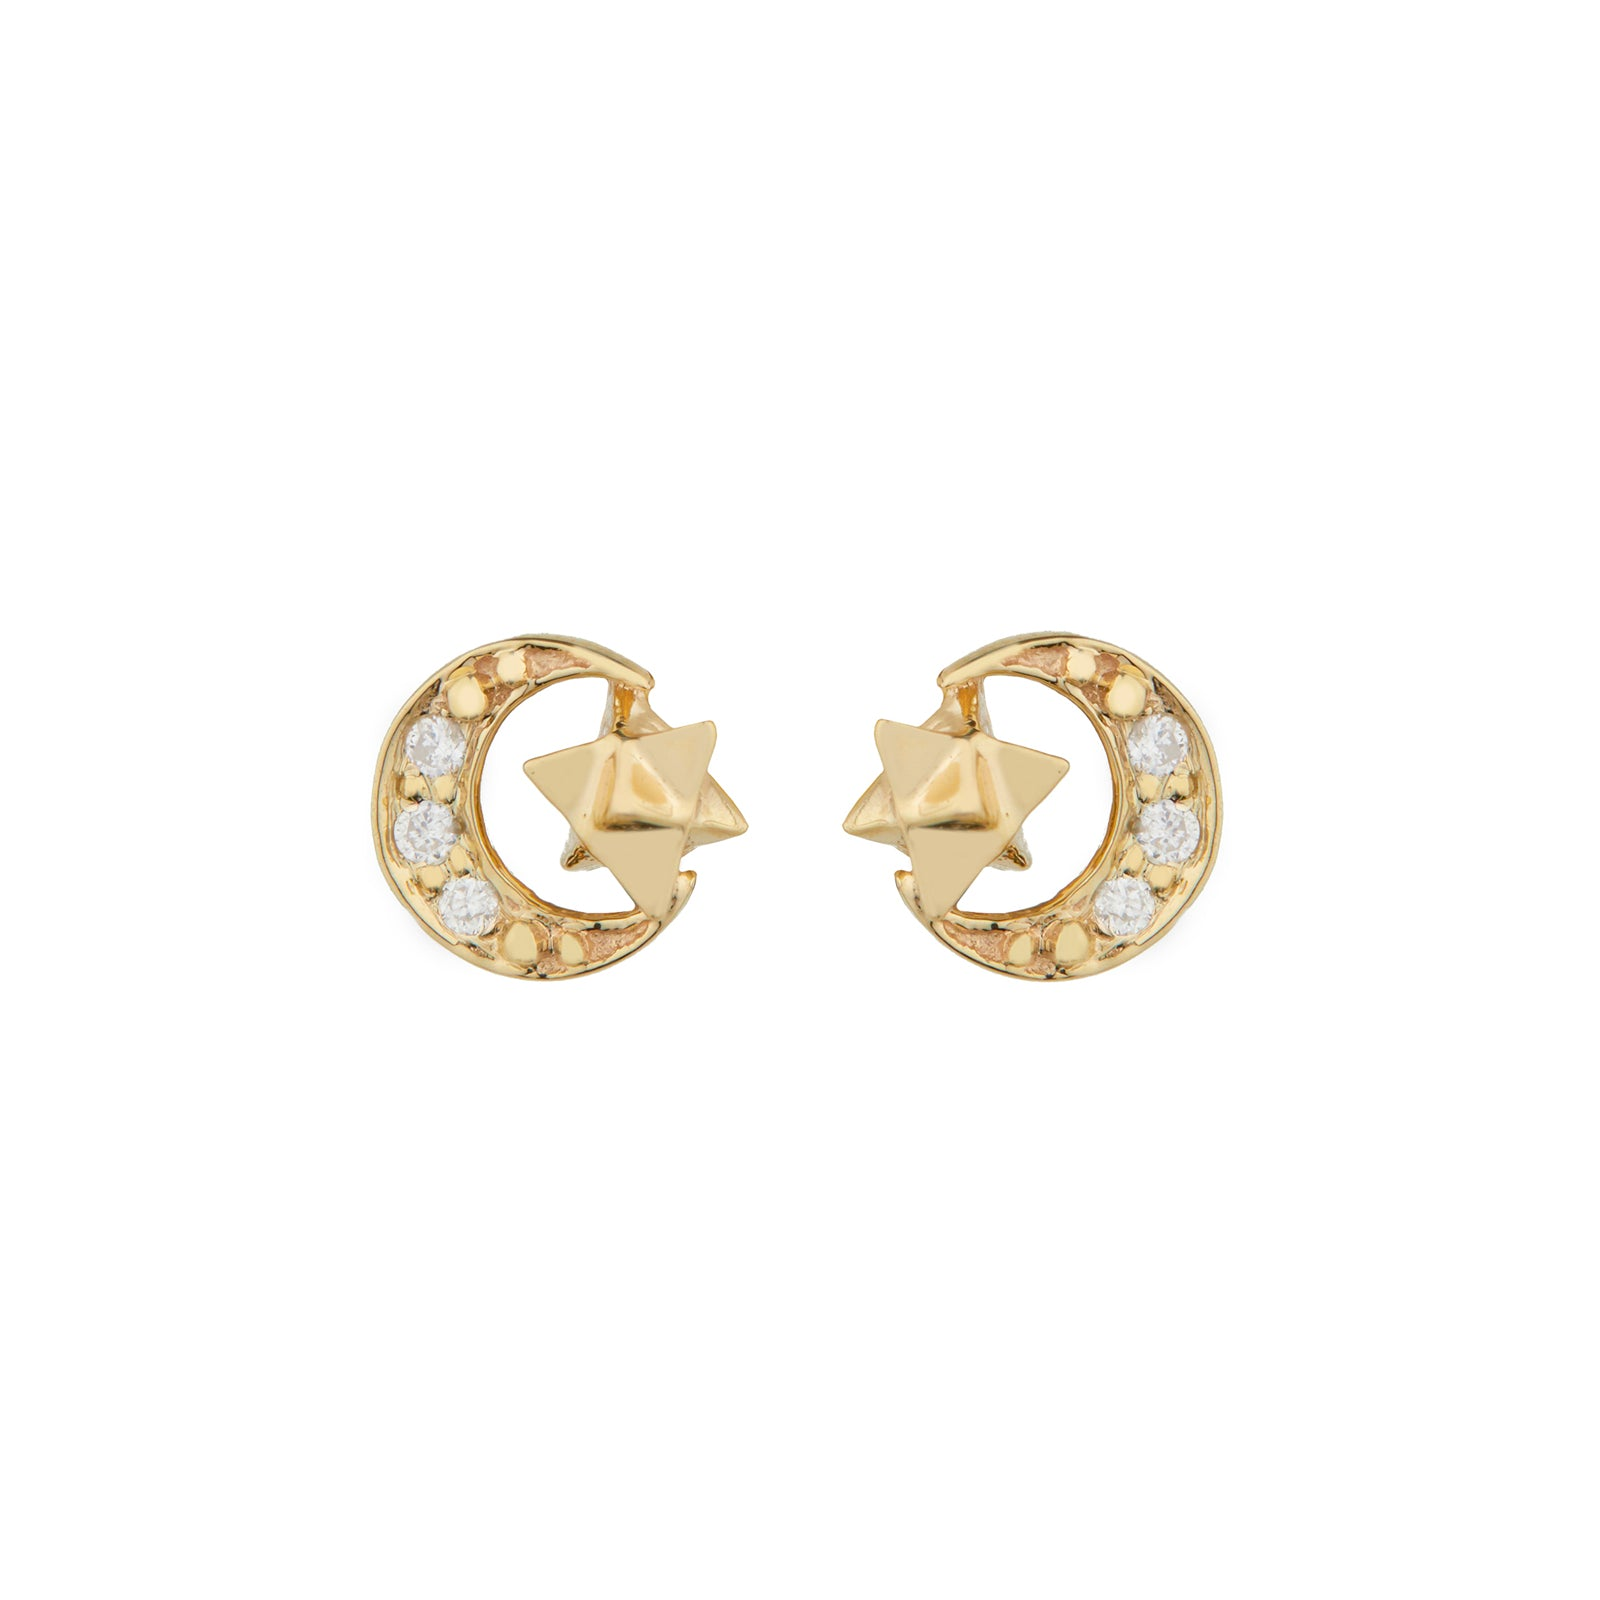 Celine Daoust Moon Merkaba Earrings - Diamond - Earrings - Broken English Jewelry